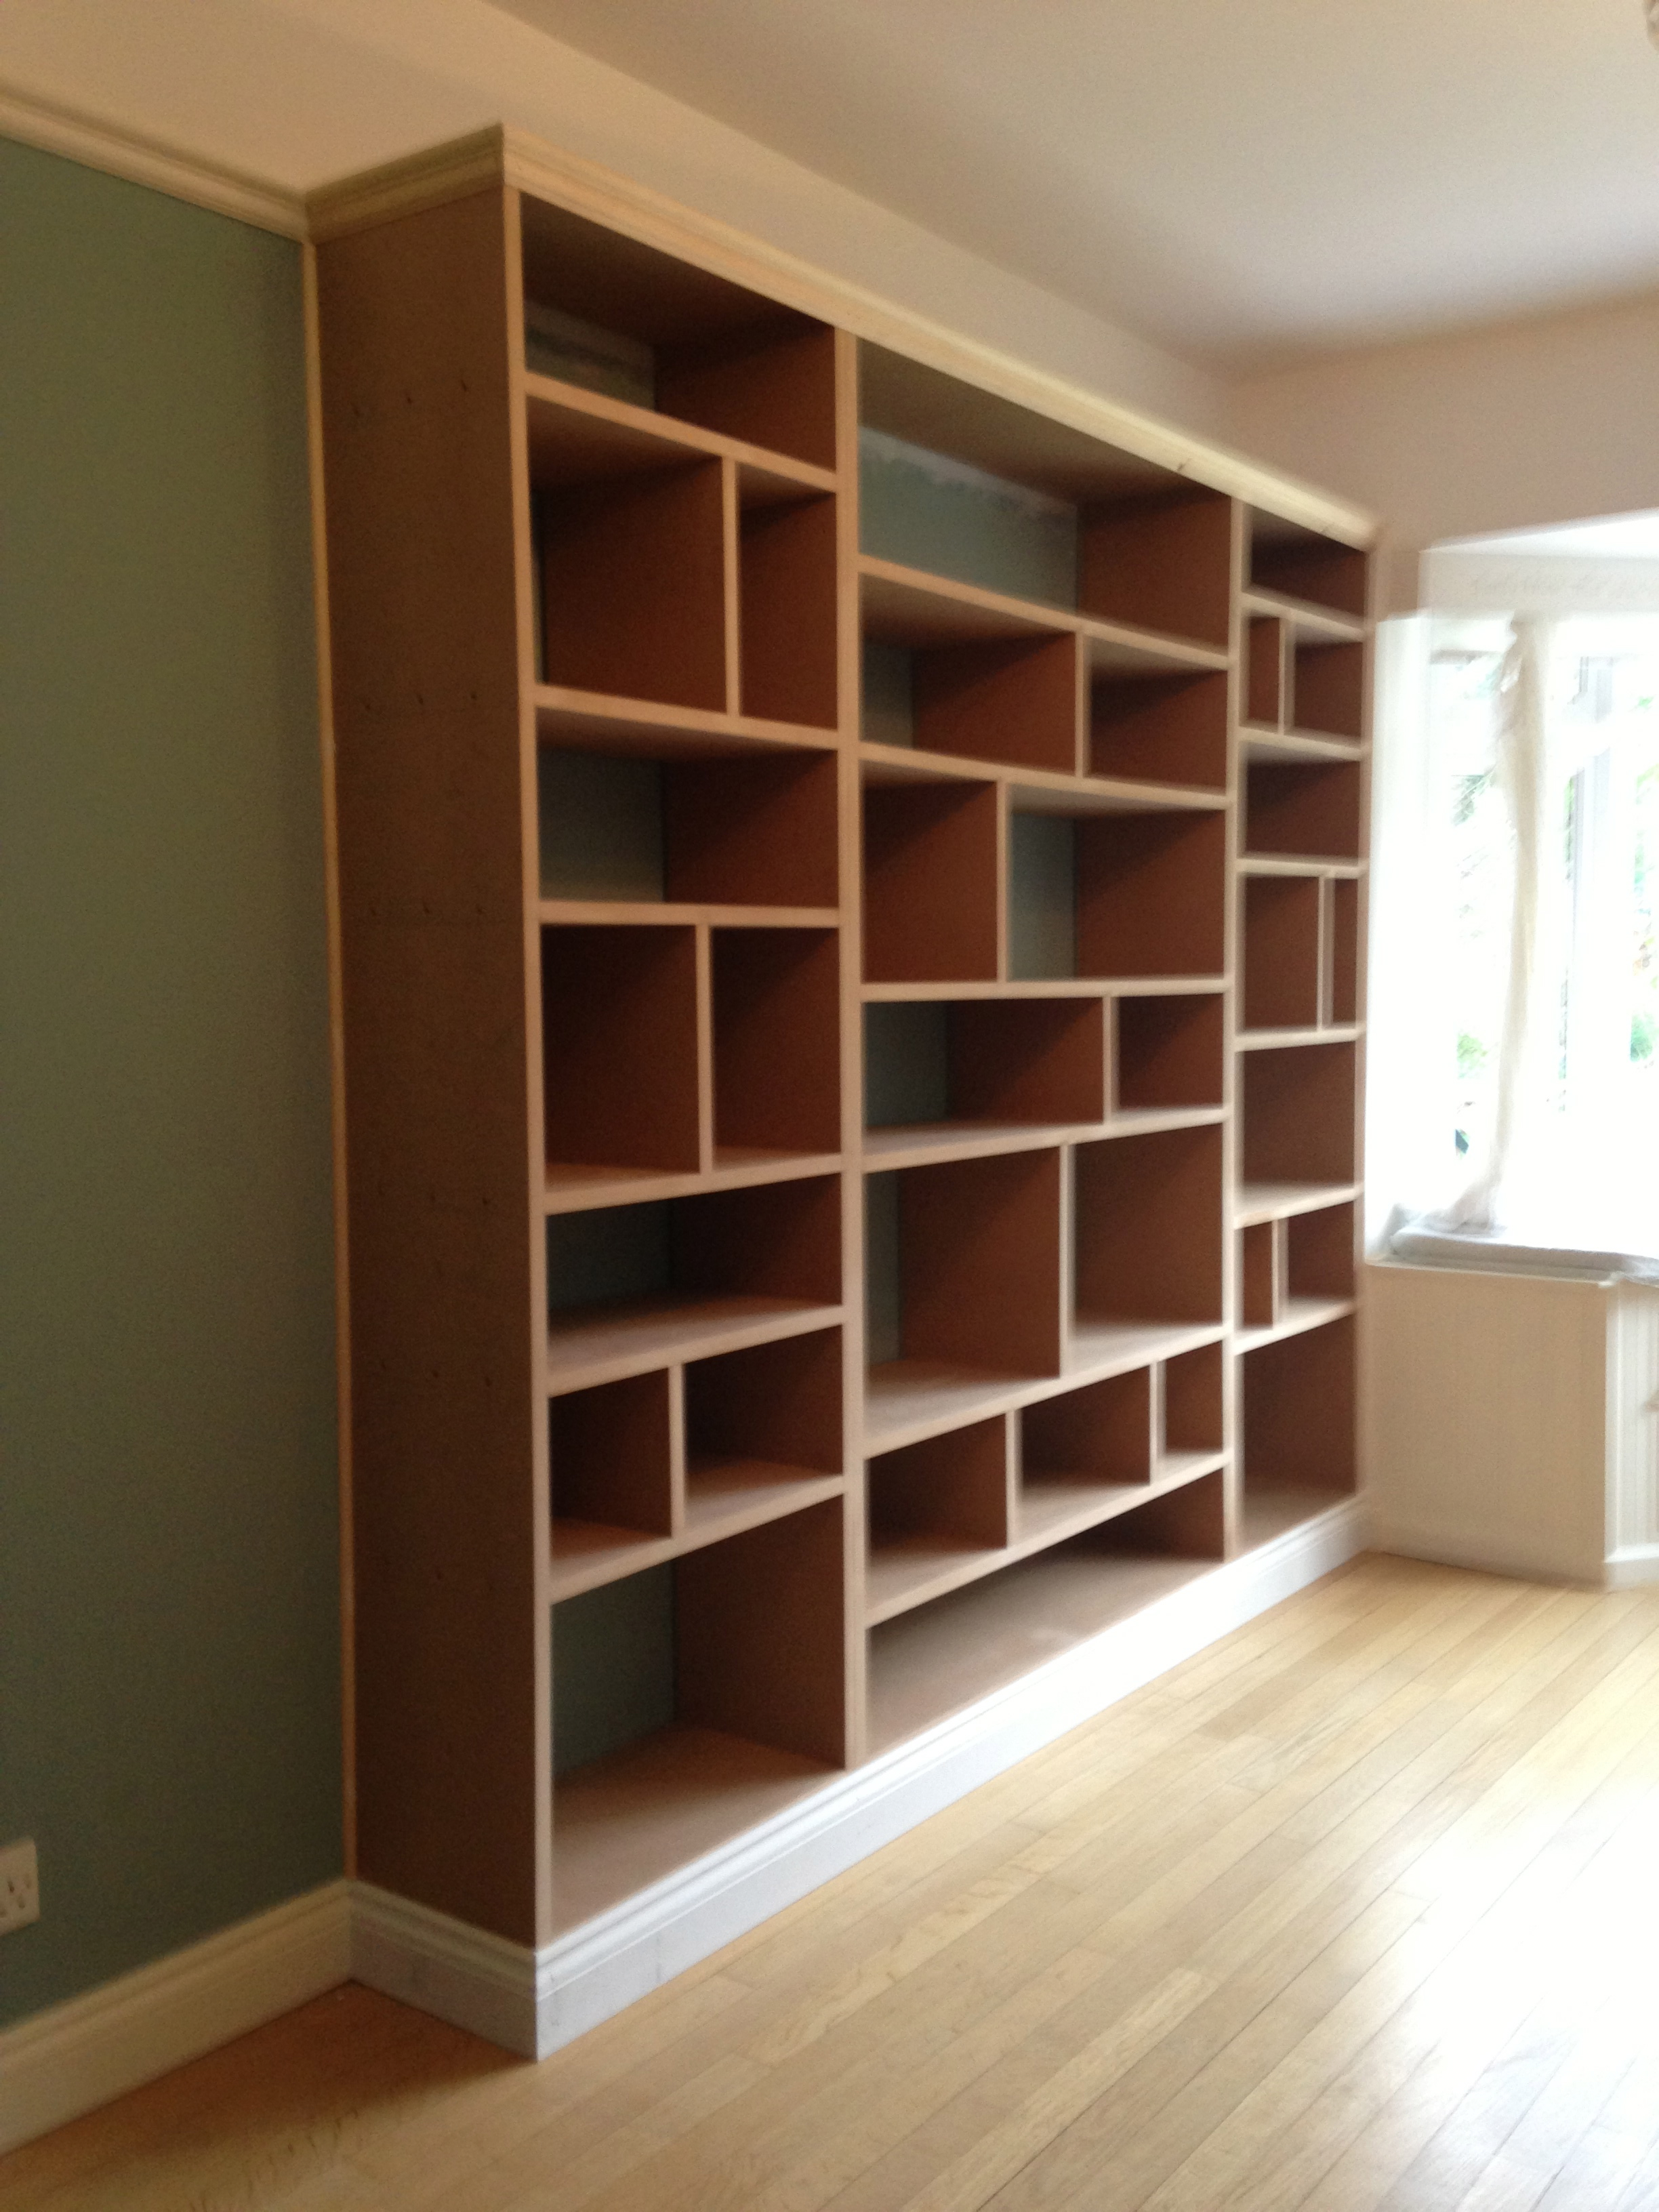 Bedroom Ideas Ikea Fitted Shelving Cupboards And Flooring P D Carpentry